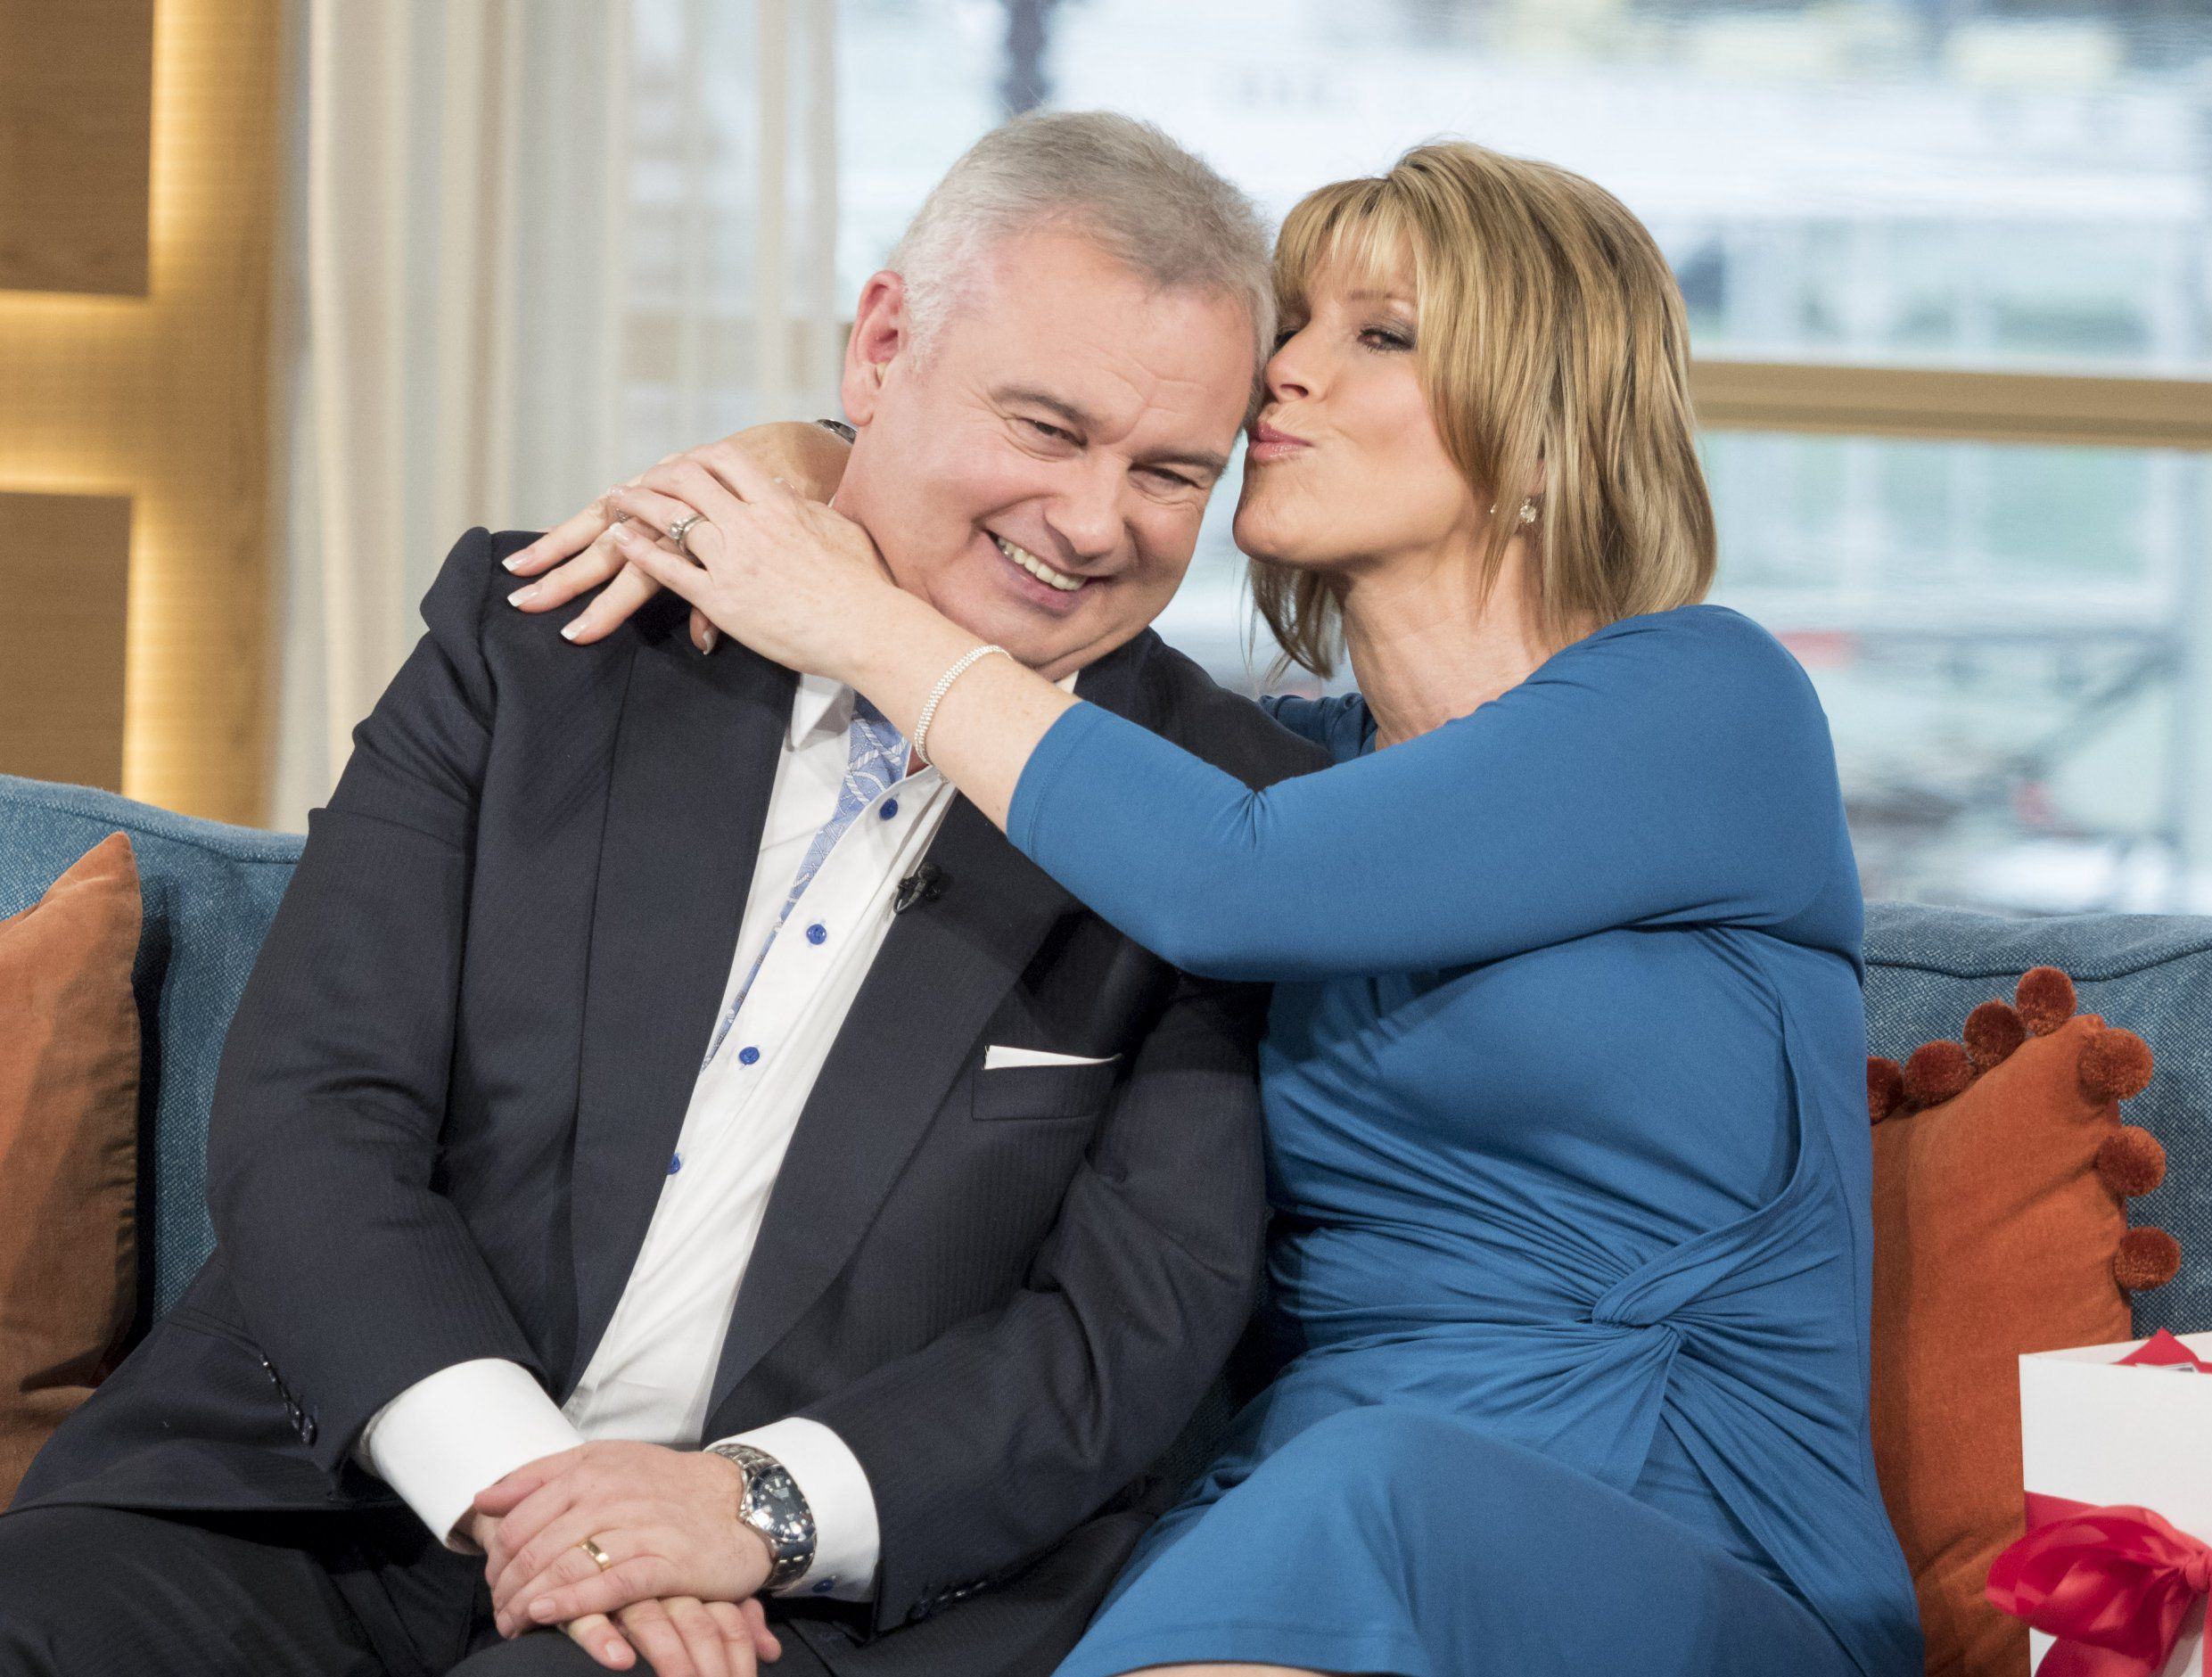 EDITORIAL USE ONLY. NO MERCHANDISING Mandatory Credit: Photo by Ken McKay/ITV/REX/Shutterstock (5577585bs) Eamonn Holmes and Ruth Langsford 'This Morning' TV show, London, Britain - 29 Jan 2016